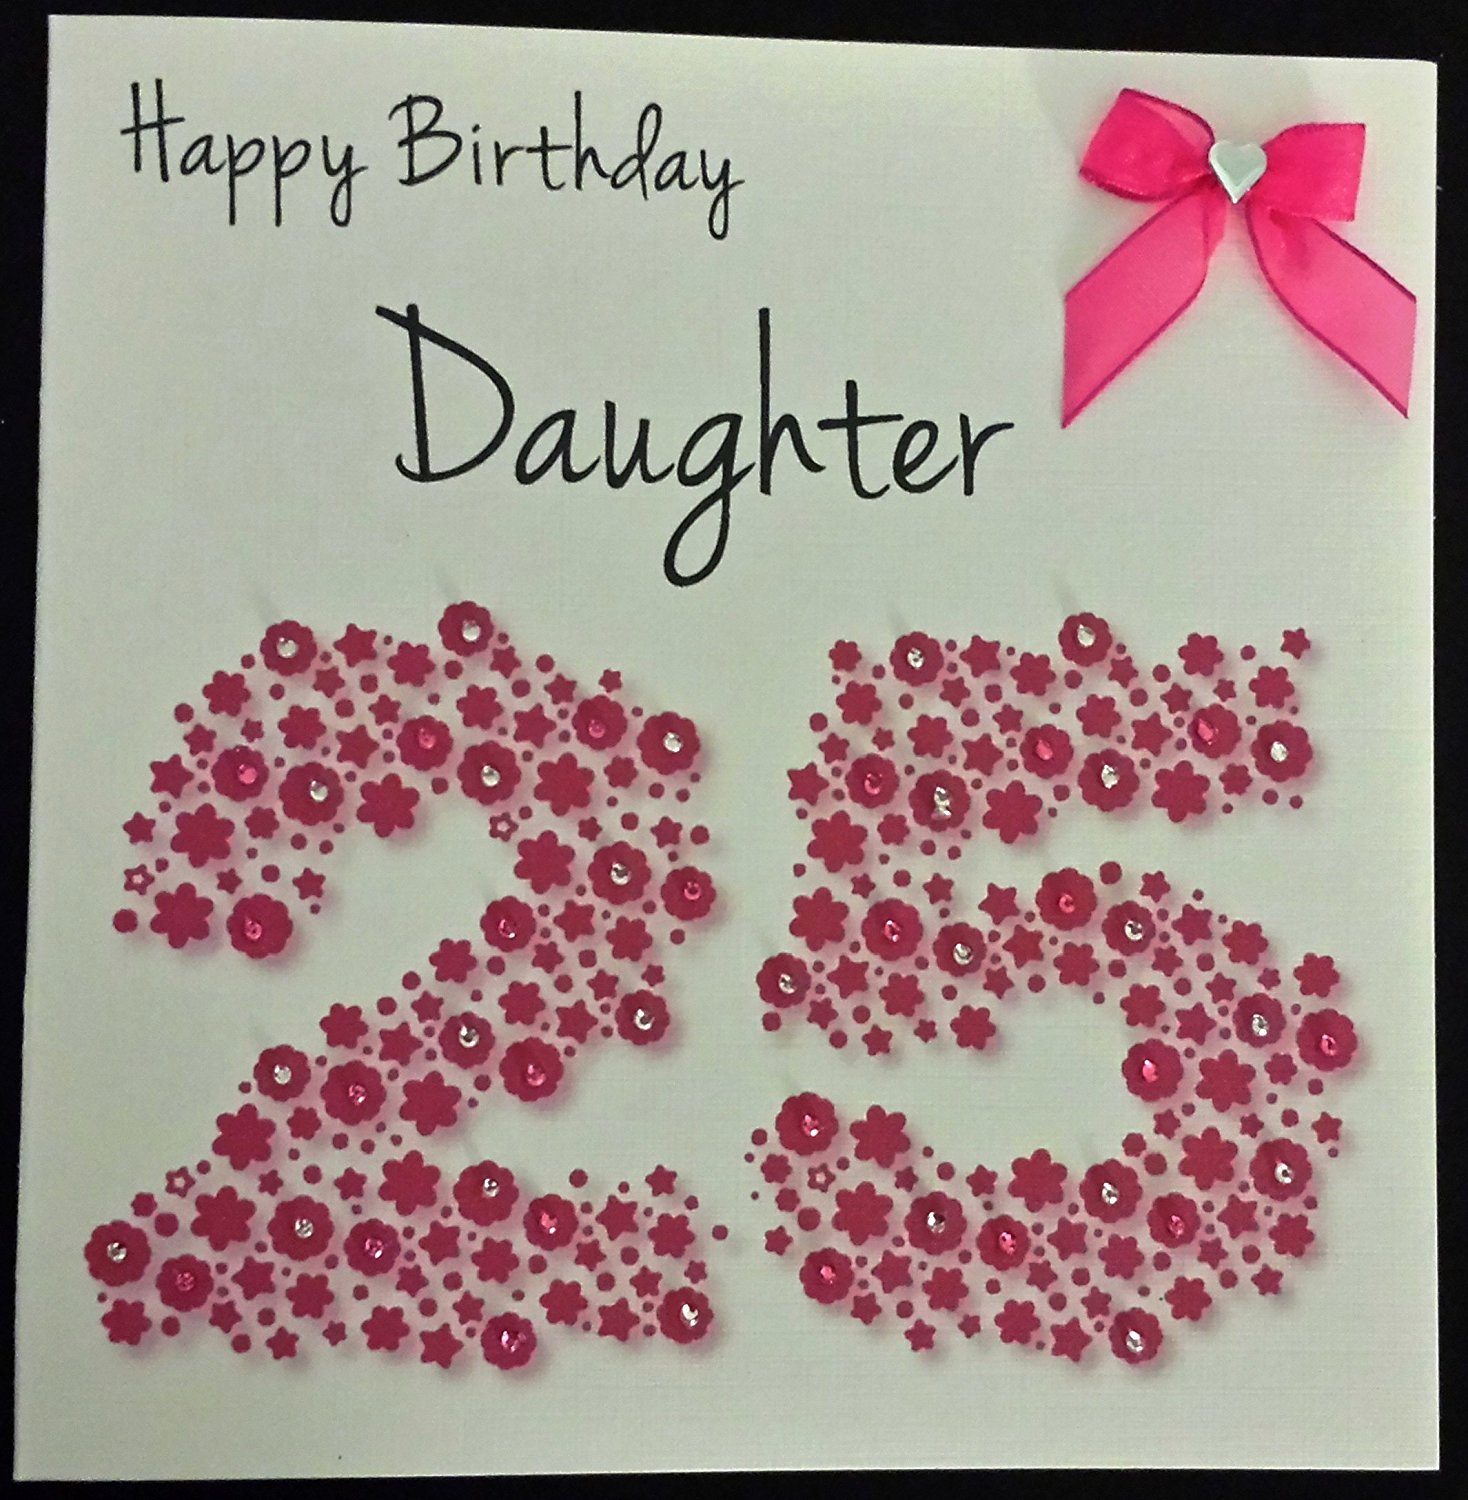 25th birthday greeting cards ; 25th-birthday-cards-awesome-happy-birthday-card-daughter-25th-bright-pink-flowerbed-of-25th-birthday-cards